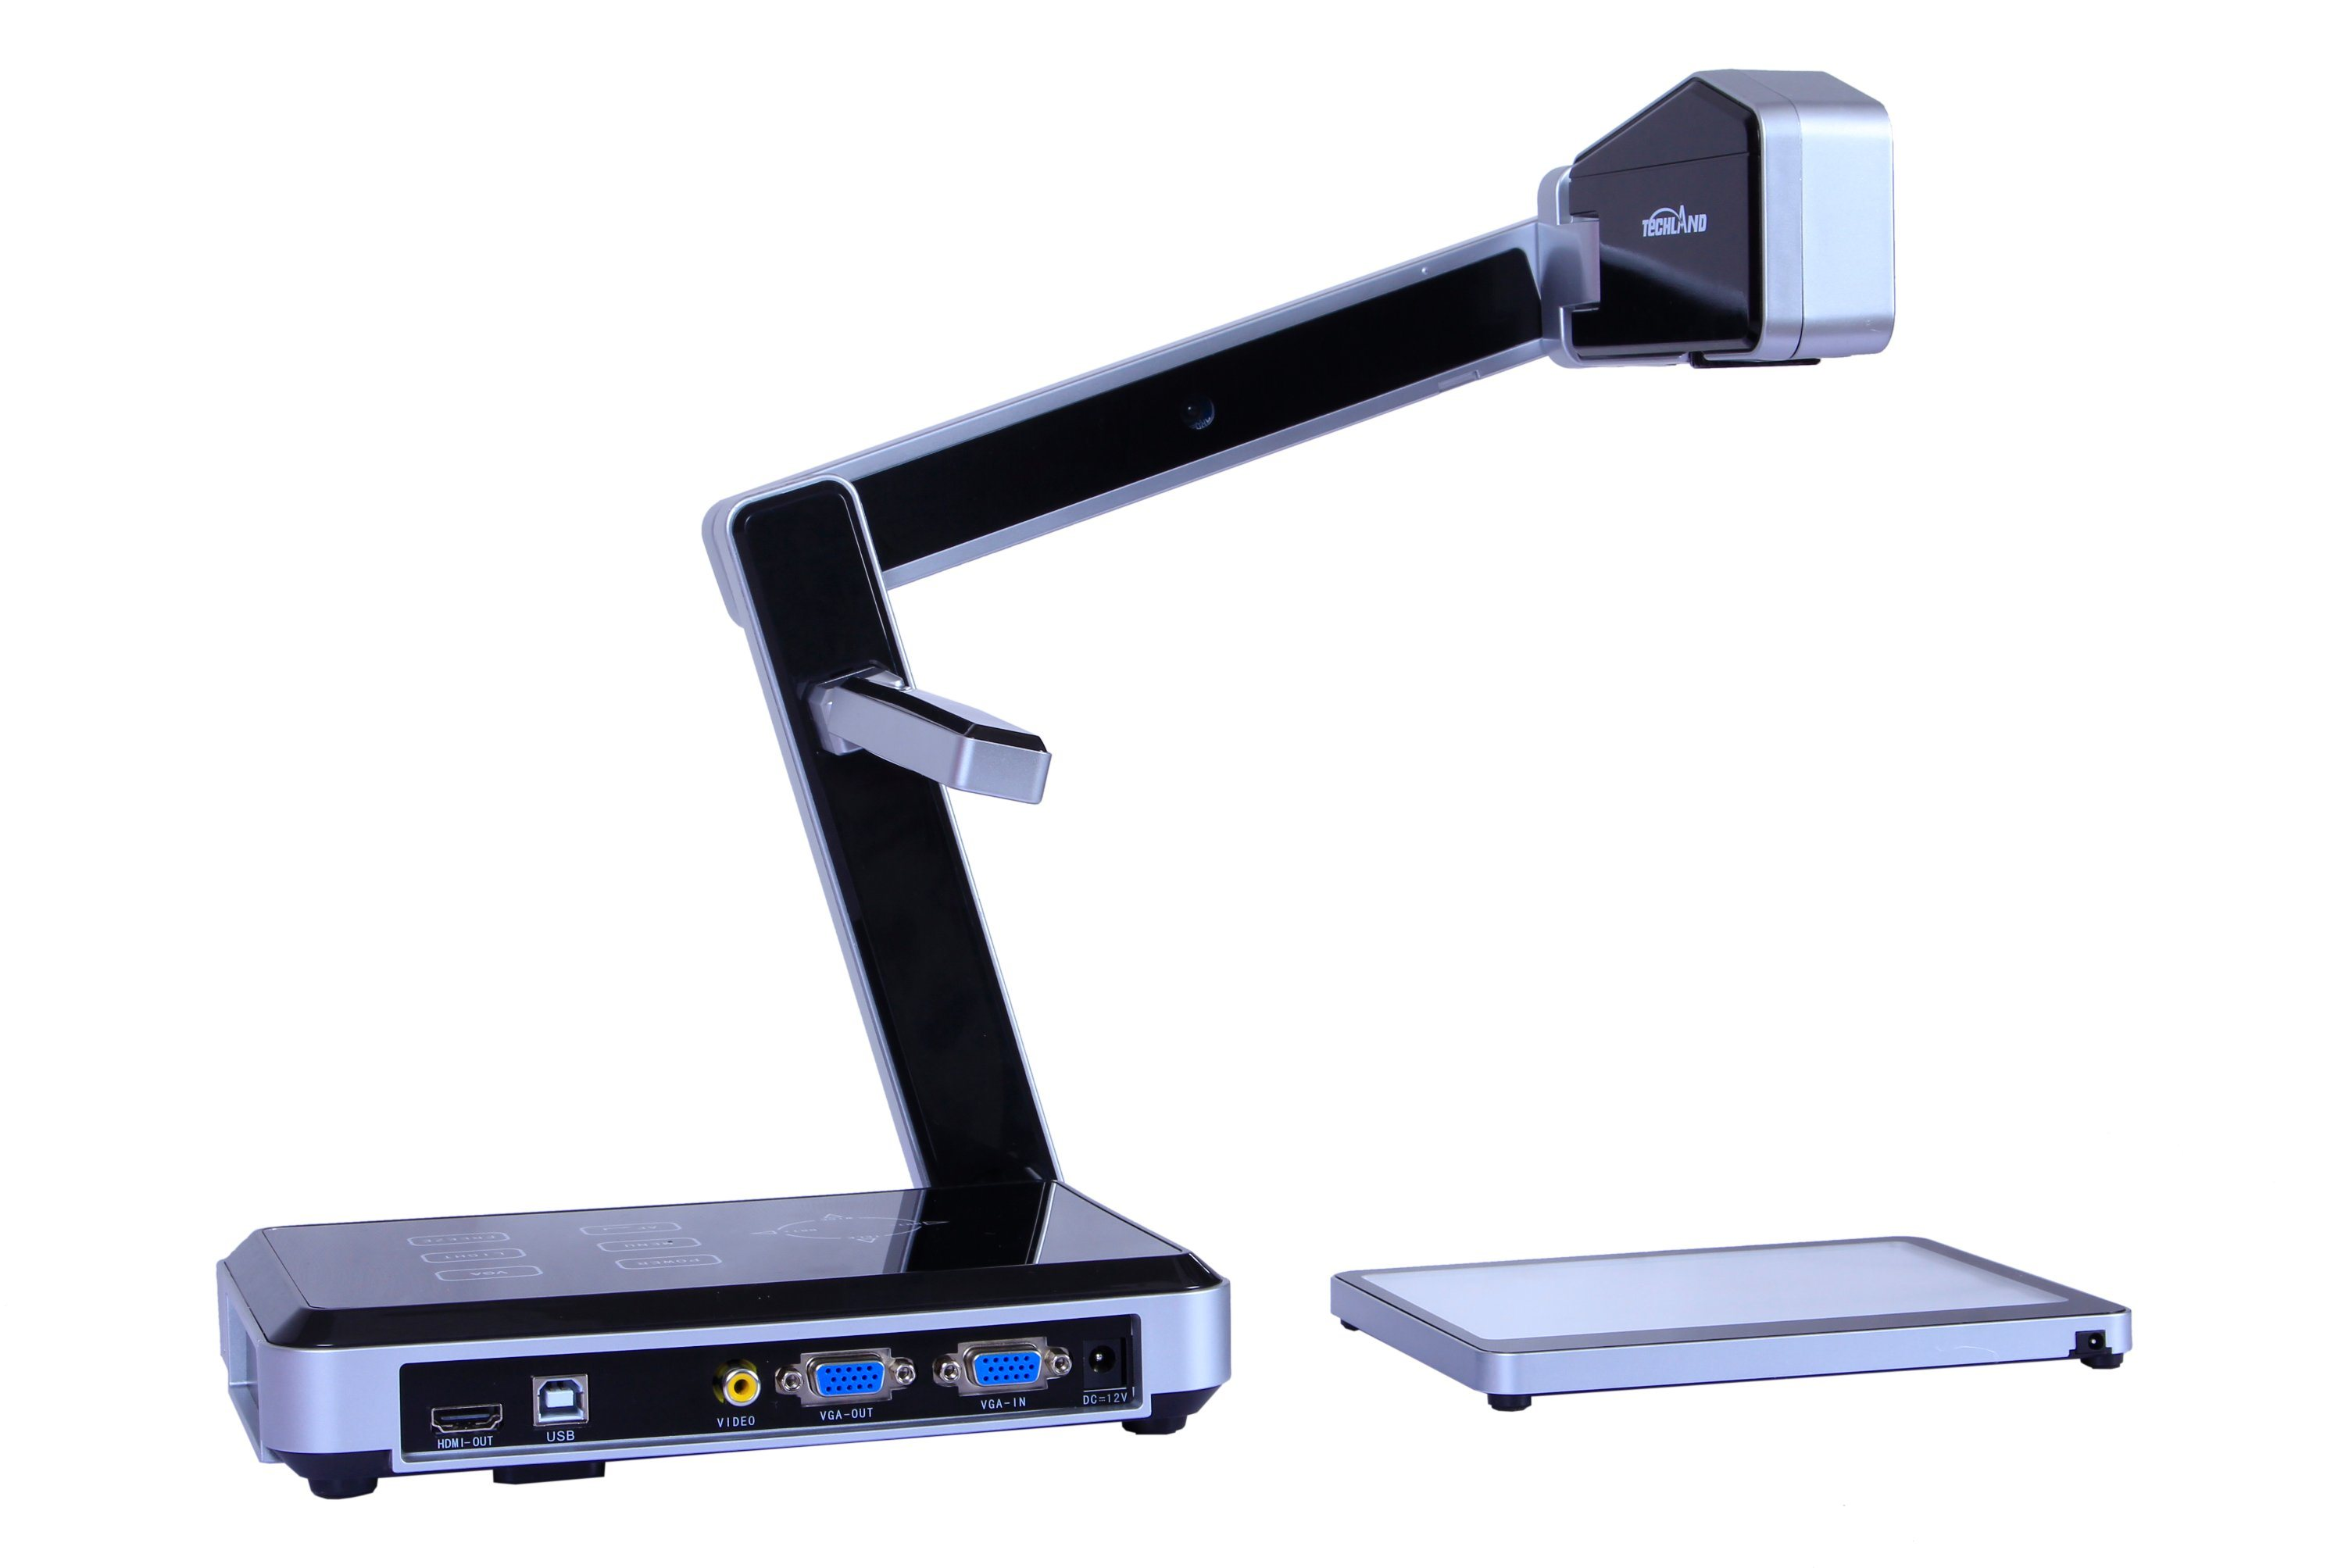 Merveilleux China School Supplies Portable Visualizer For Interactive Whiteboard And  Projector   China Visual Presenter, Document Camera